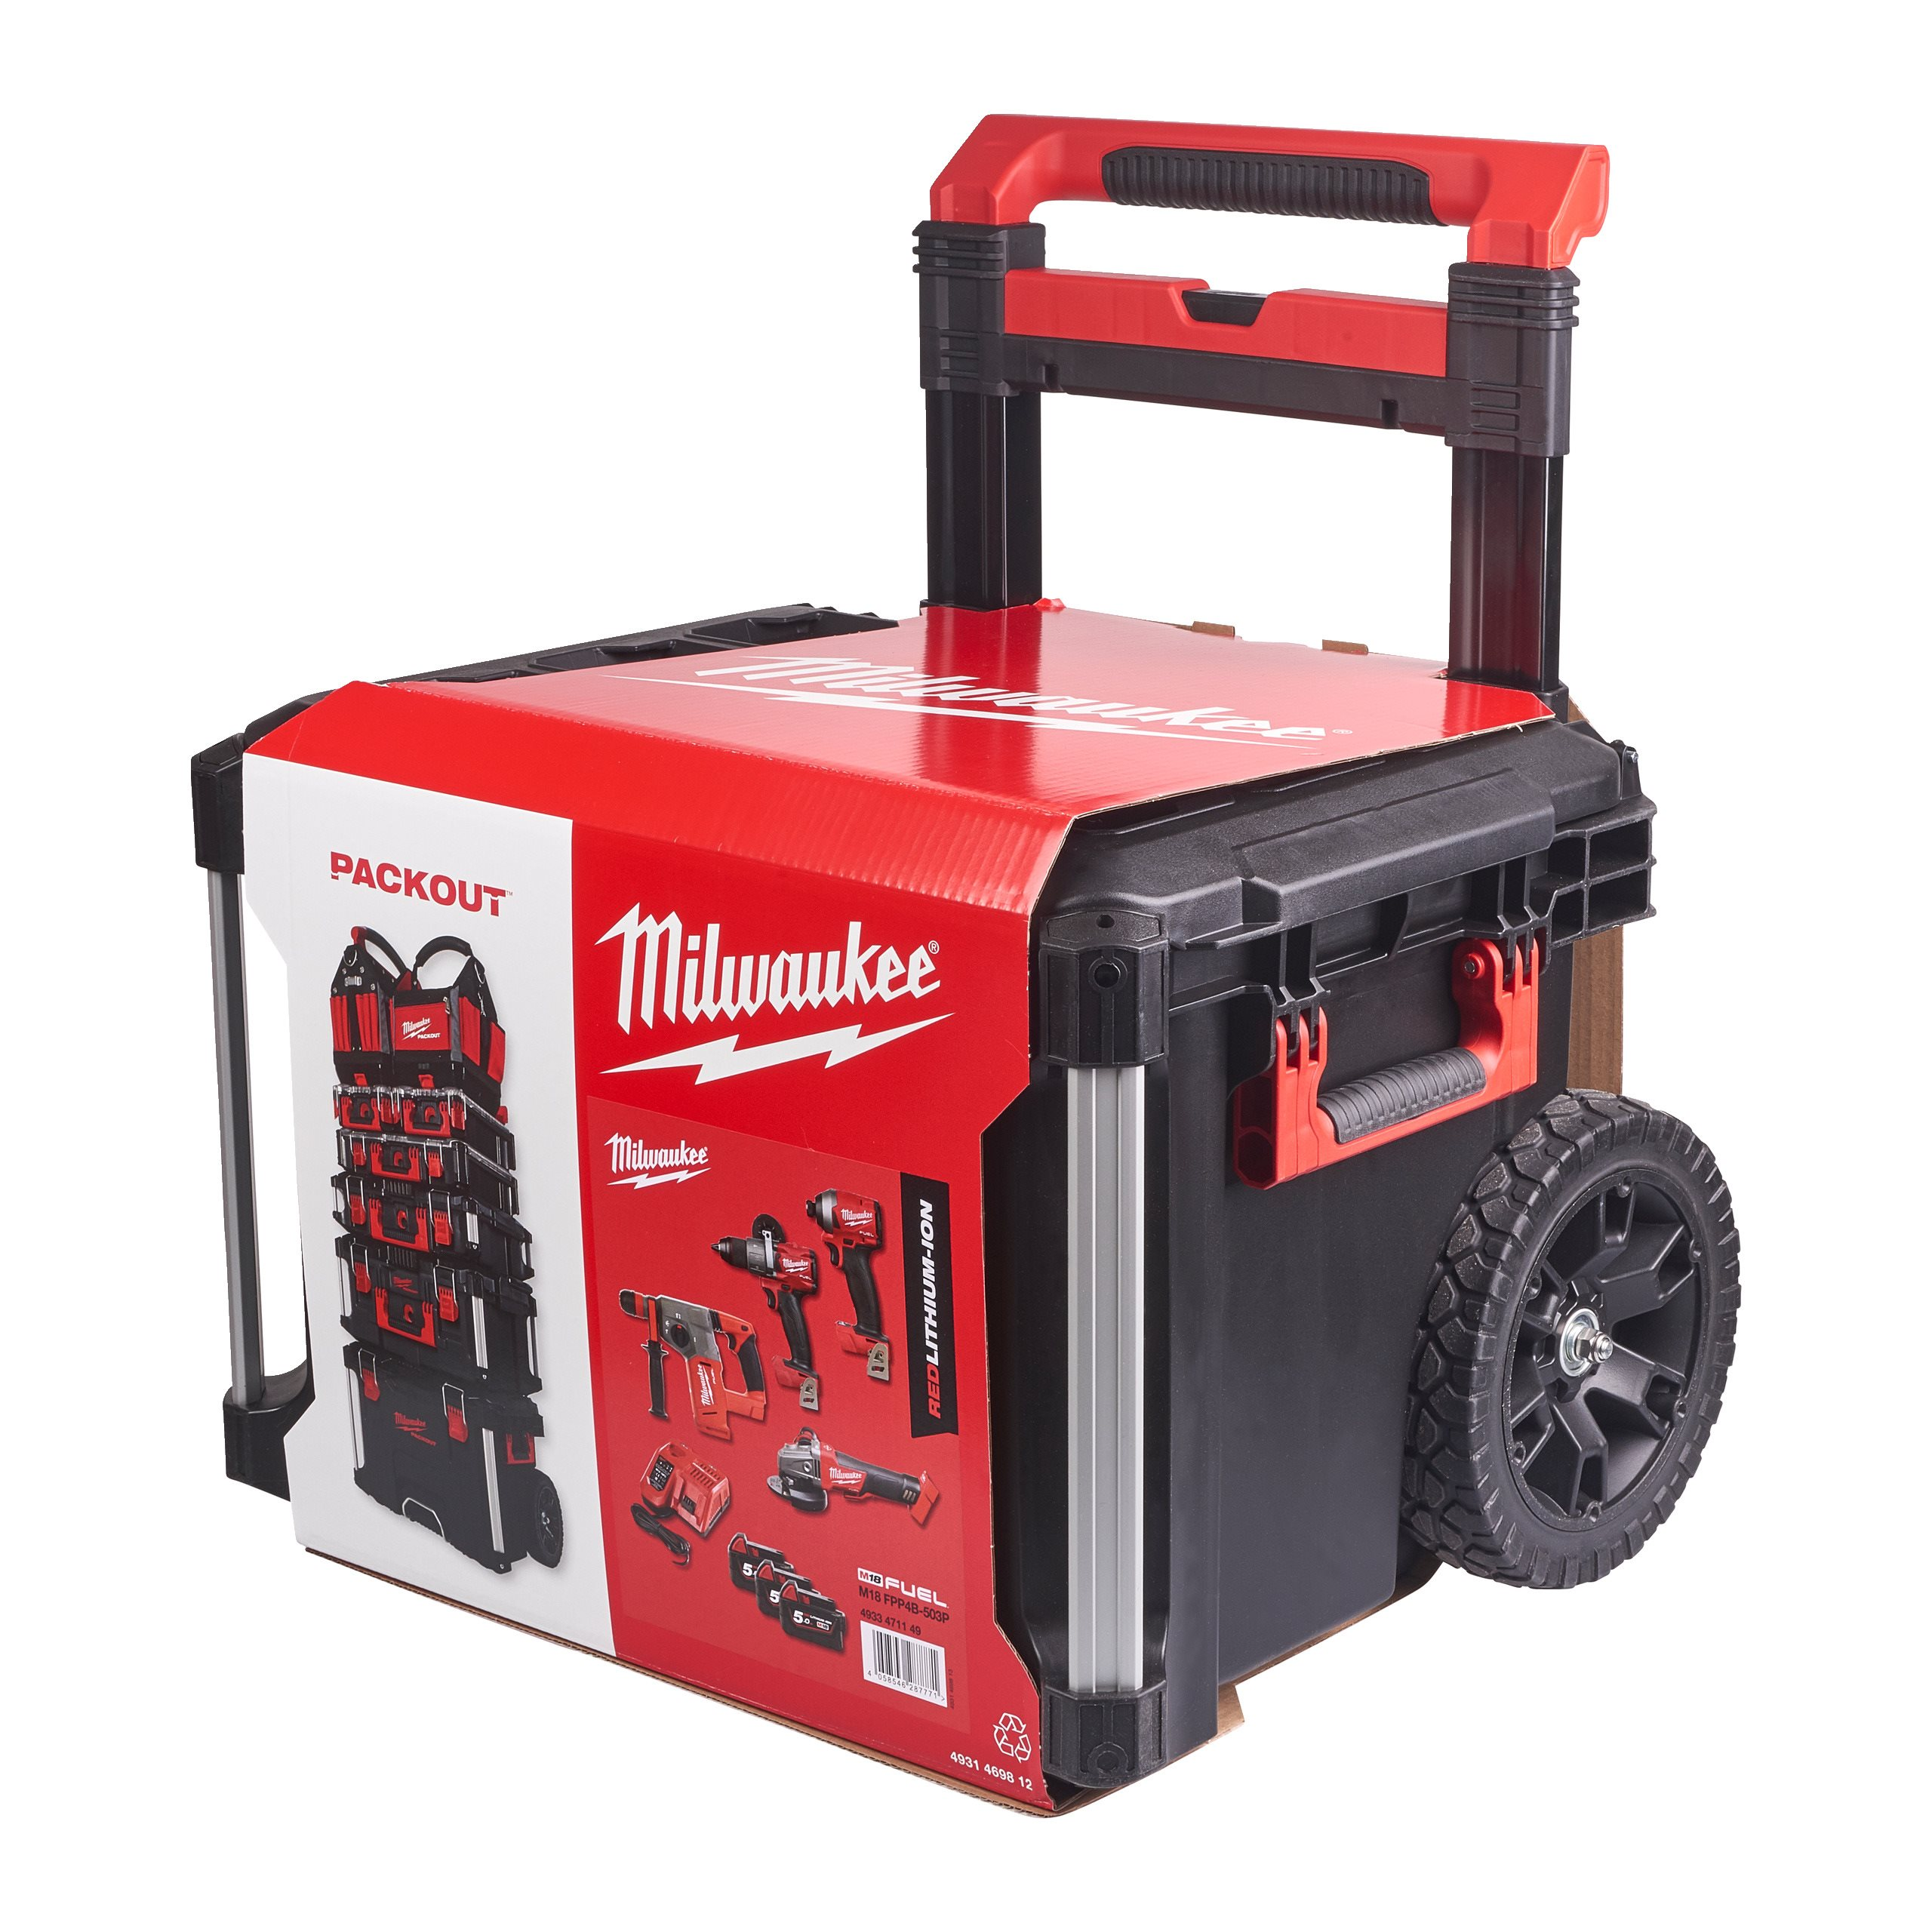 Out Trolley M18 Fpp4b-503p Red /& Black Milwaukee 4933471149 Set of 4 Fuel 18 V